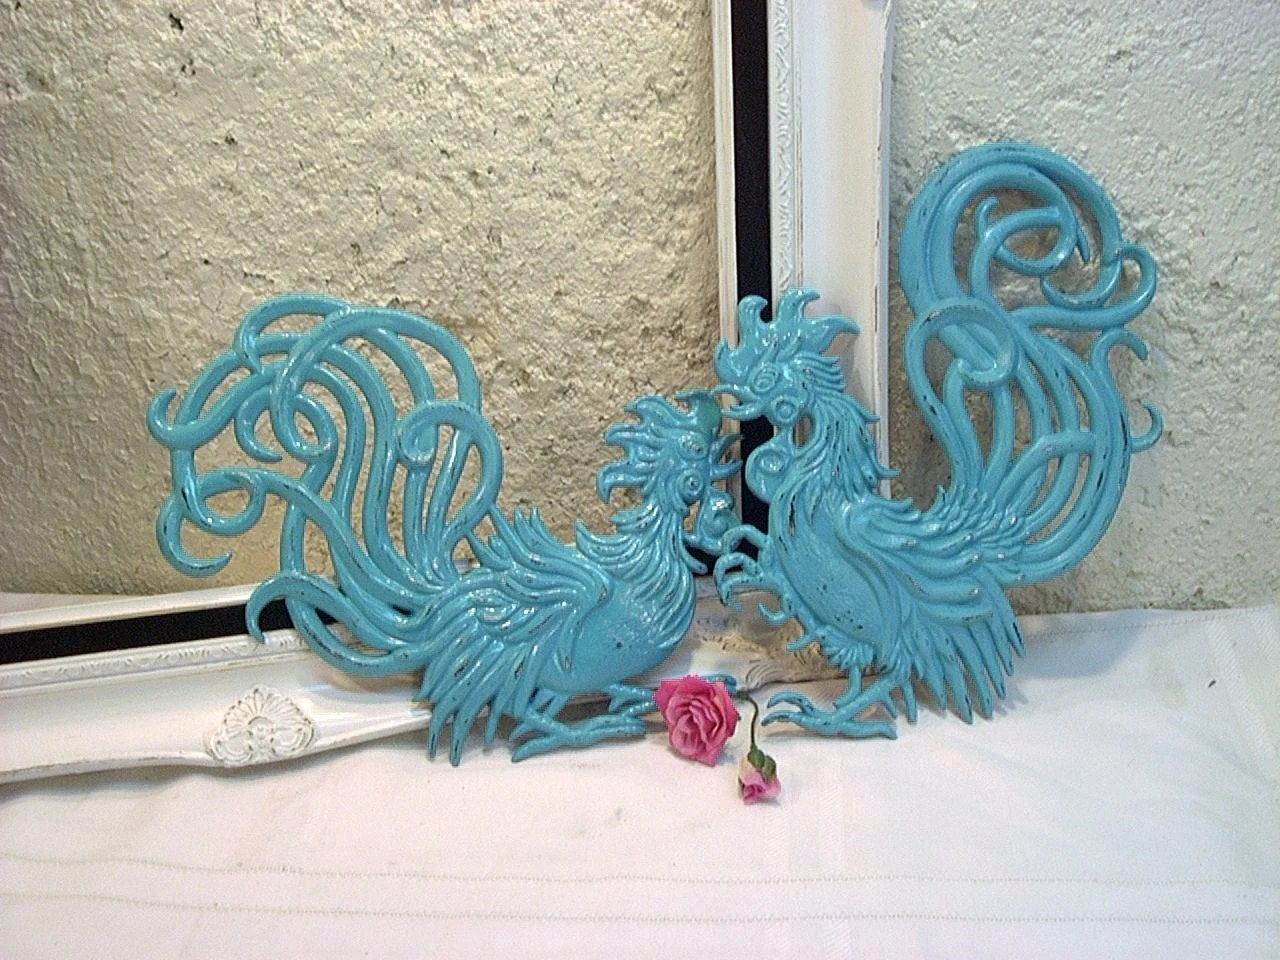 Vintage Metal Iron Rooster Kitchen Wall Decor Hot New Color